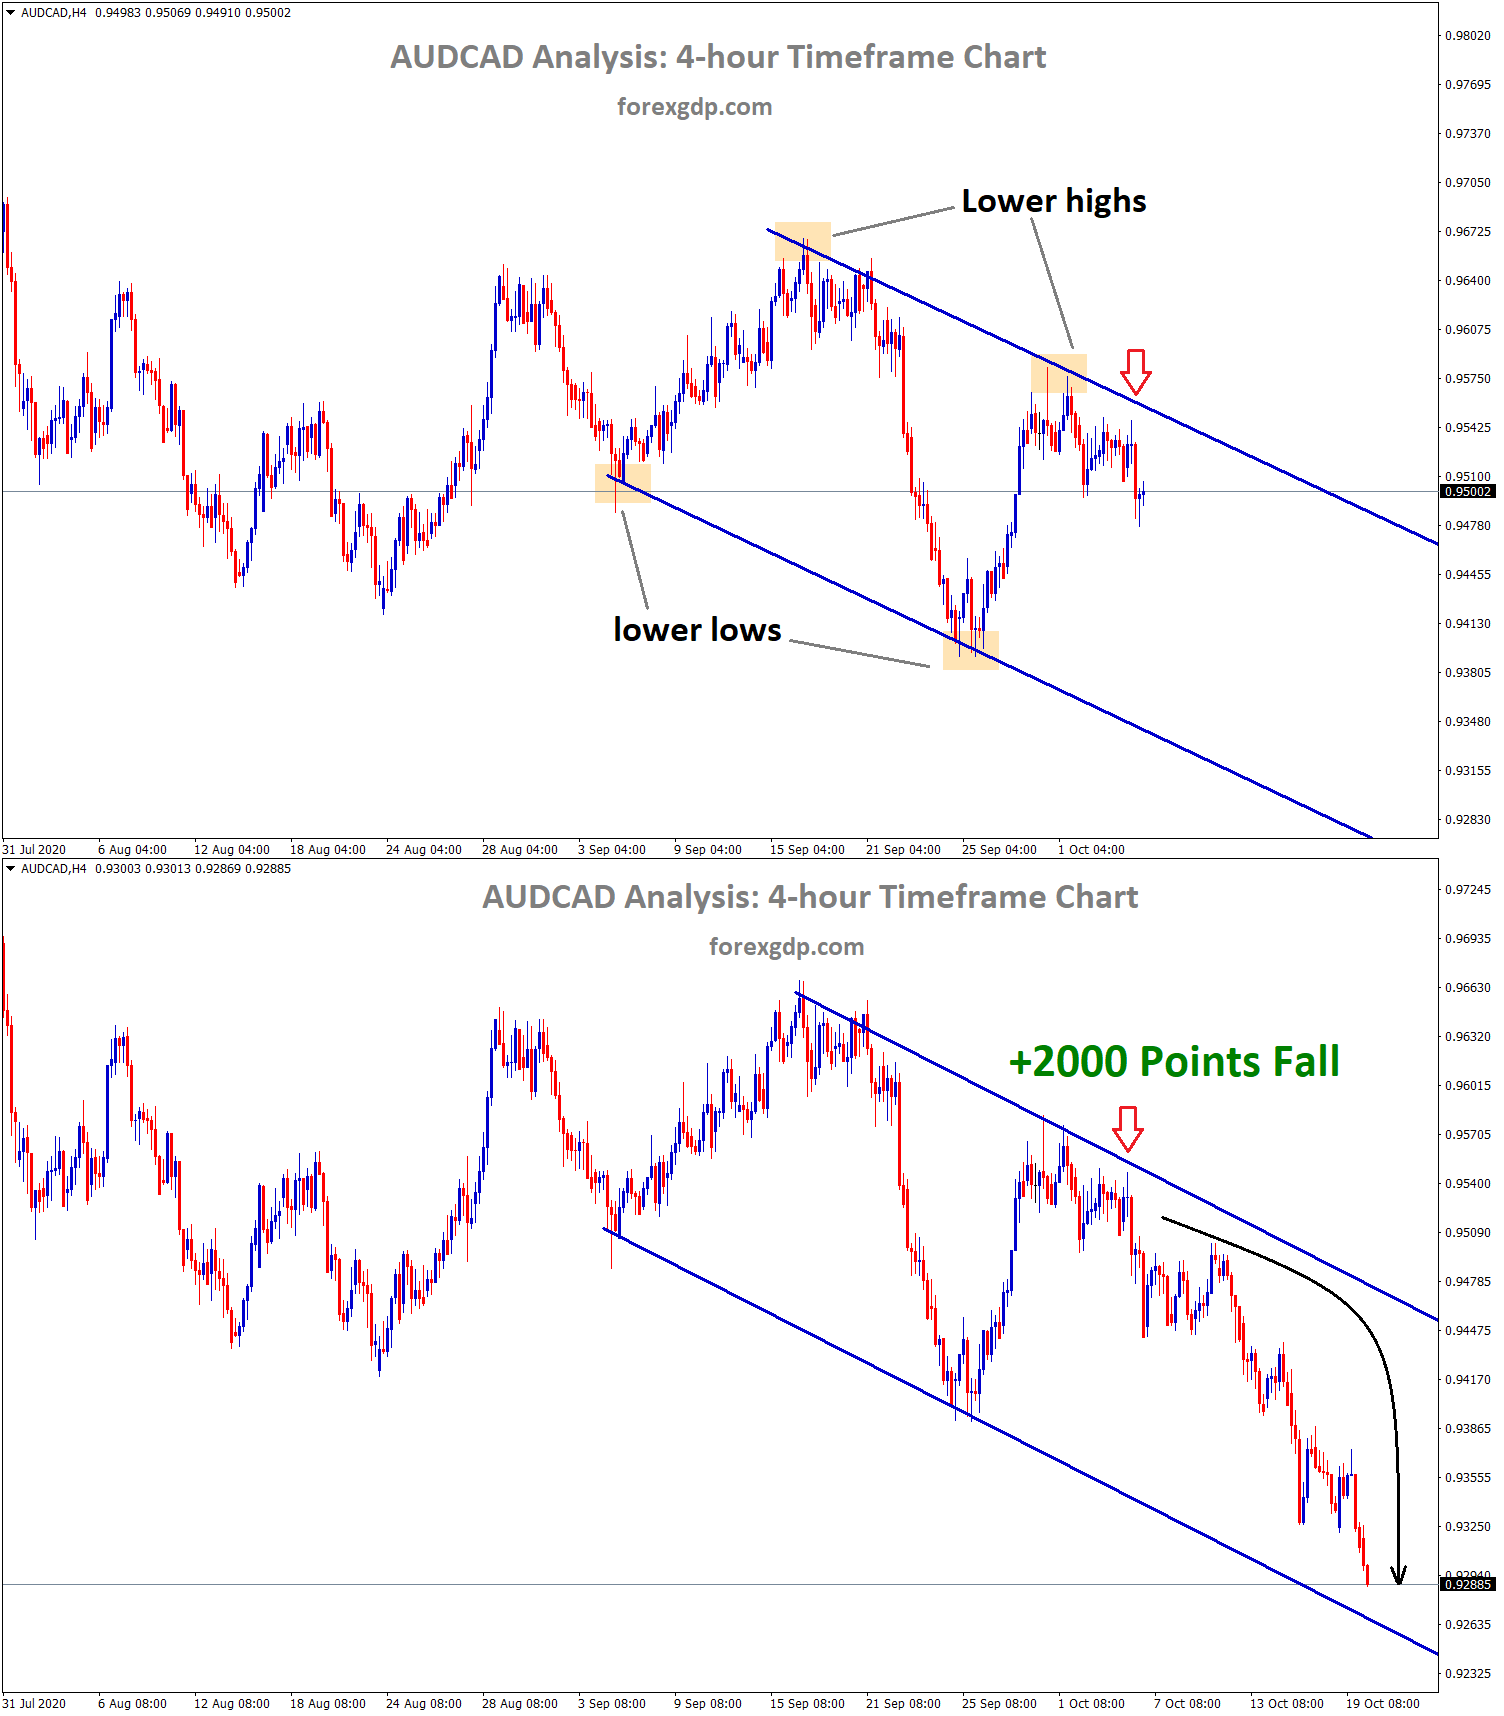 AUDCAD falls 2000 points from lower high